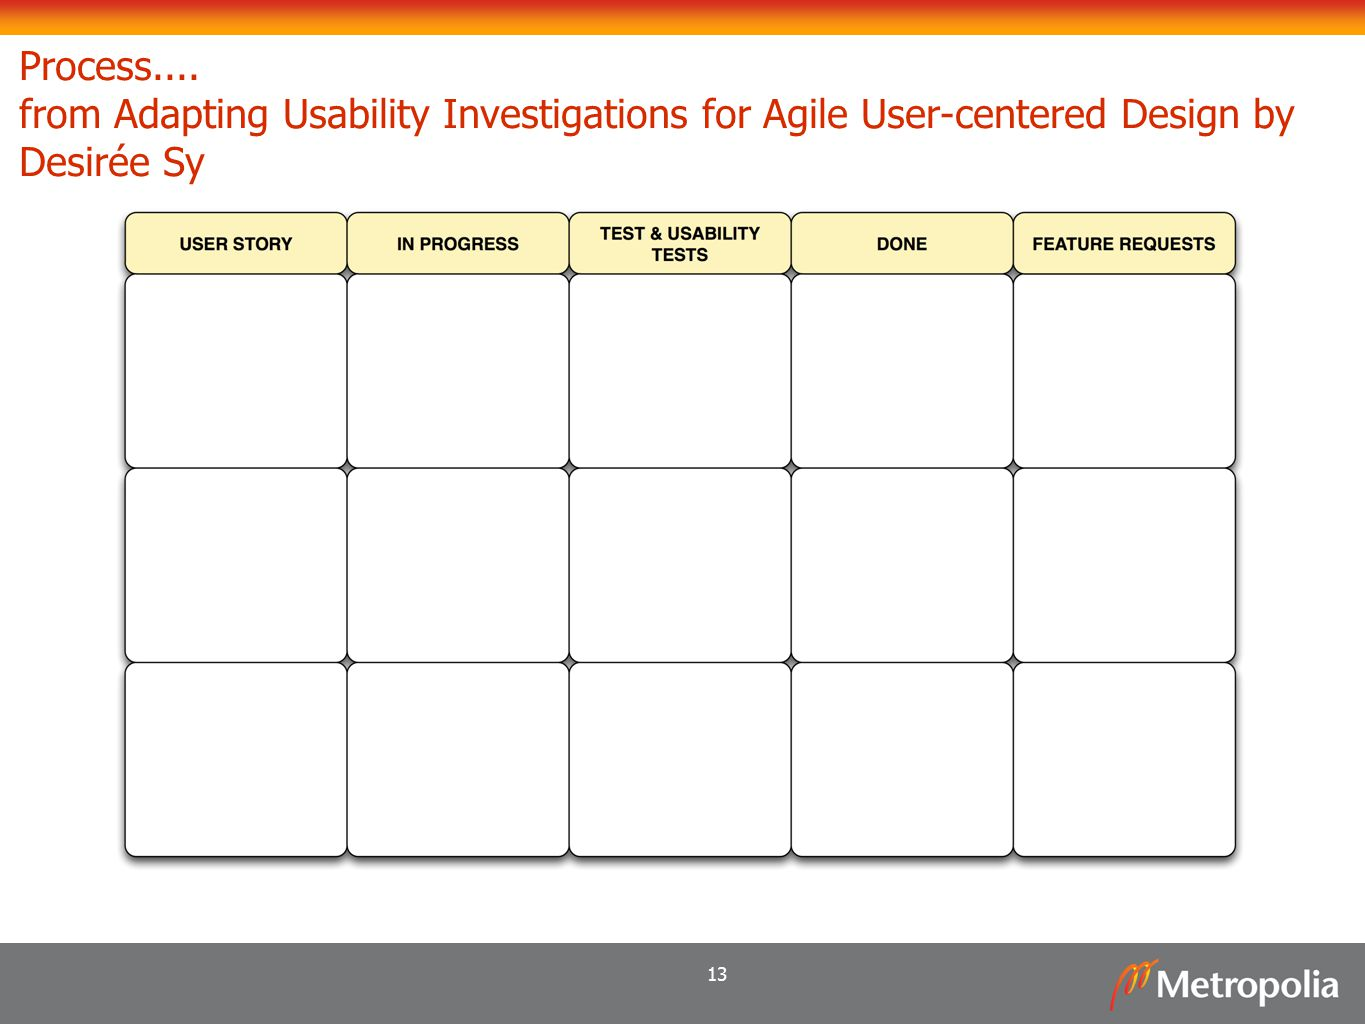 13 Process.... from Adapting Usability Investigations for Agile User-centered Design by Desirée Sy